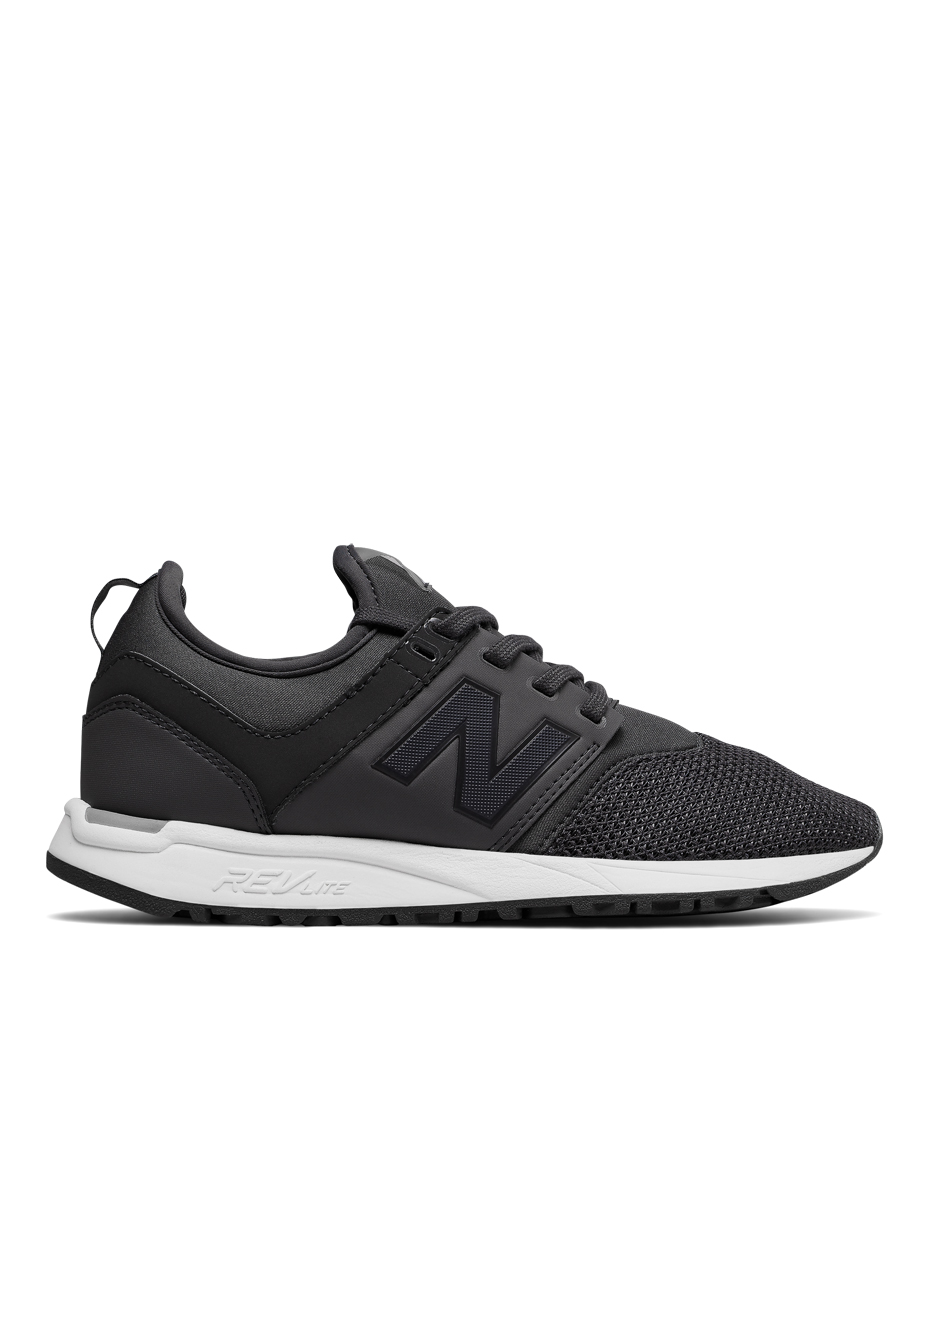 mens new balance trainers 247 white nz